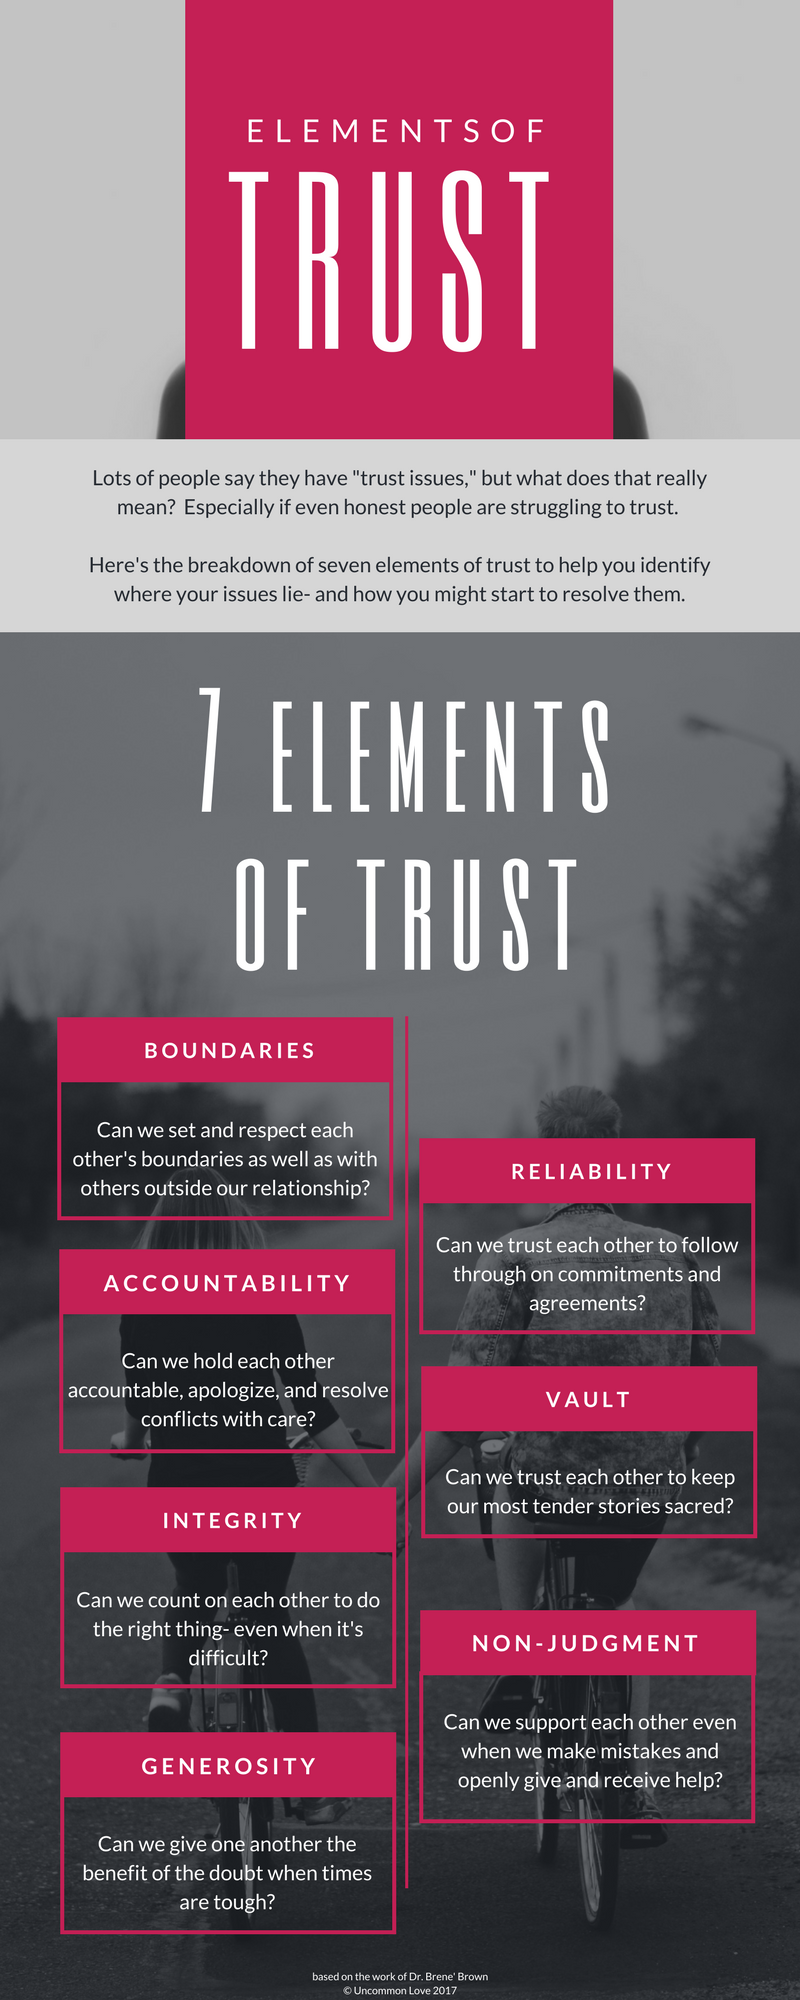 Elements of Trust PDF Brene Brown Worksheet - Uncommon Love -